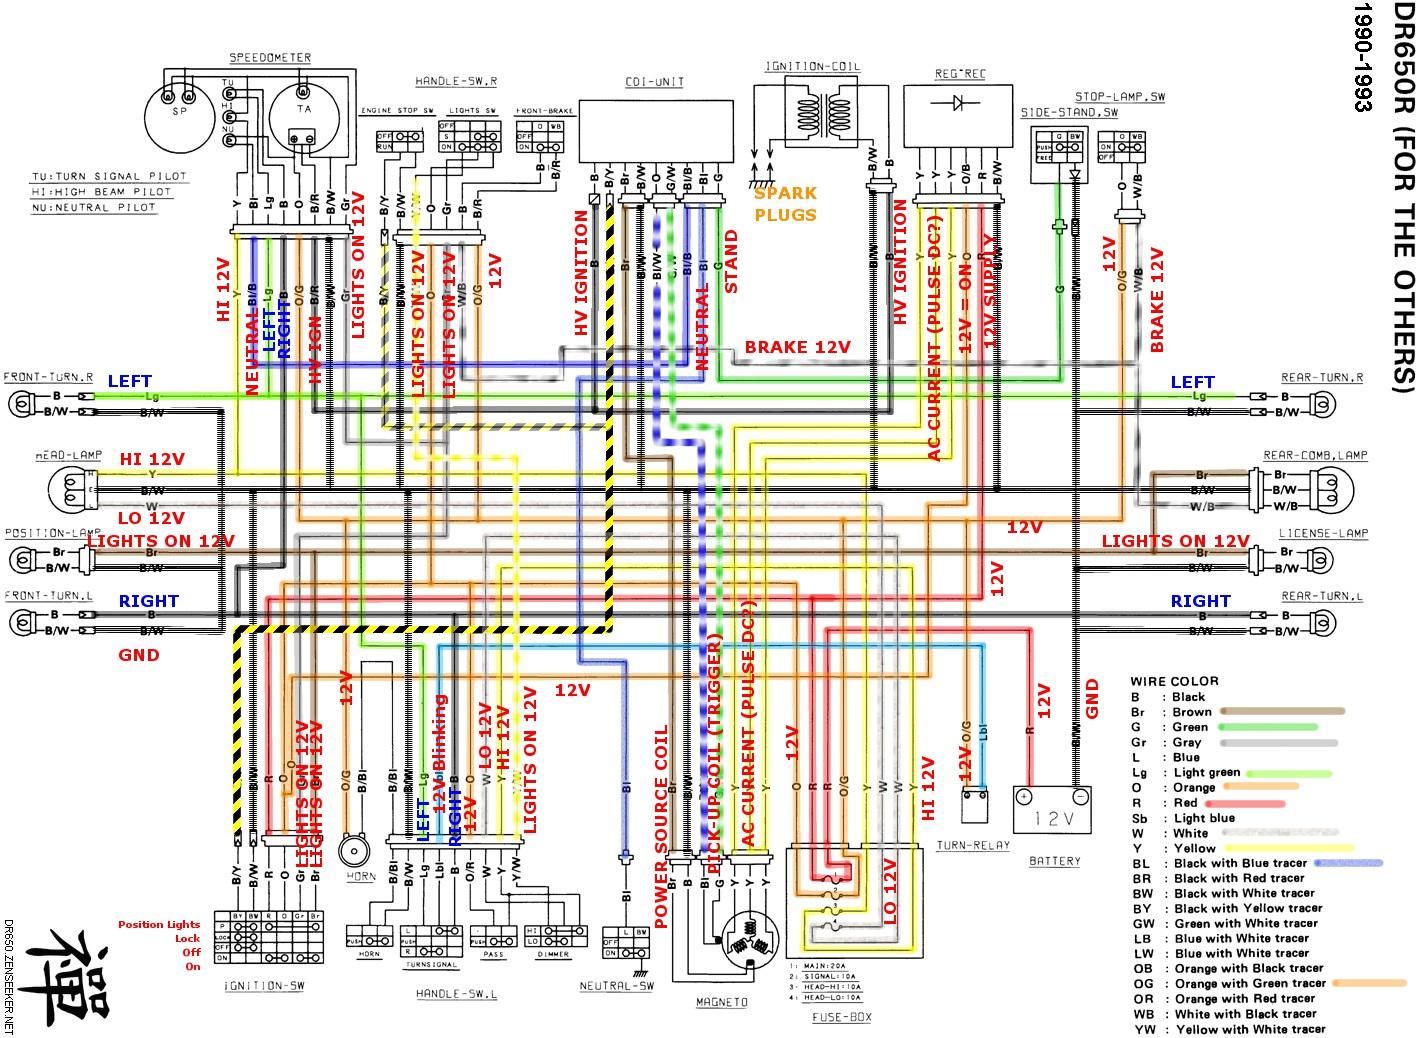 Suzuki Dr650 Electrical Page 2007 Sienna Fuse Box Diagram